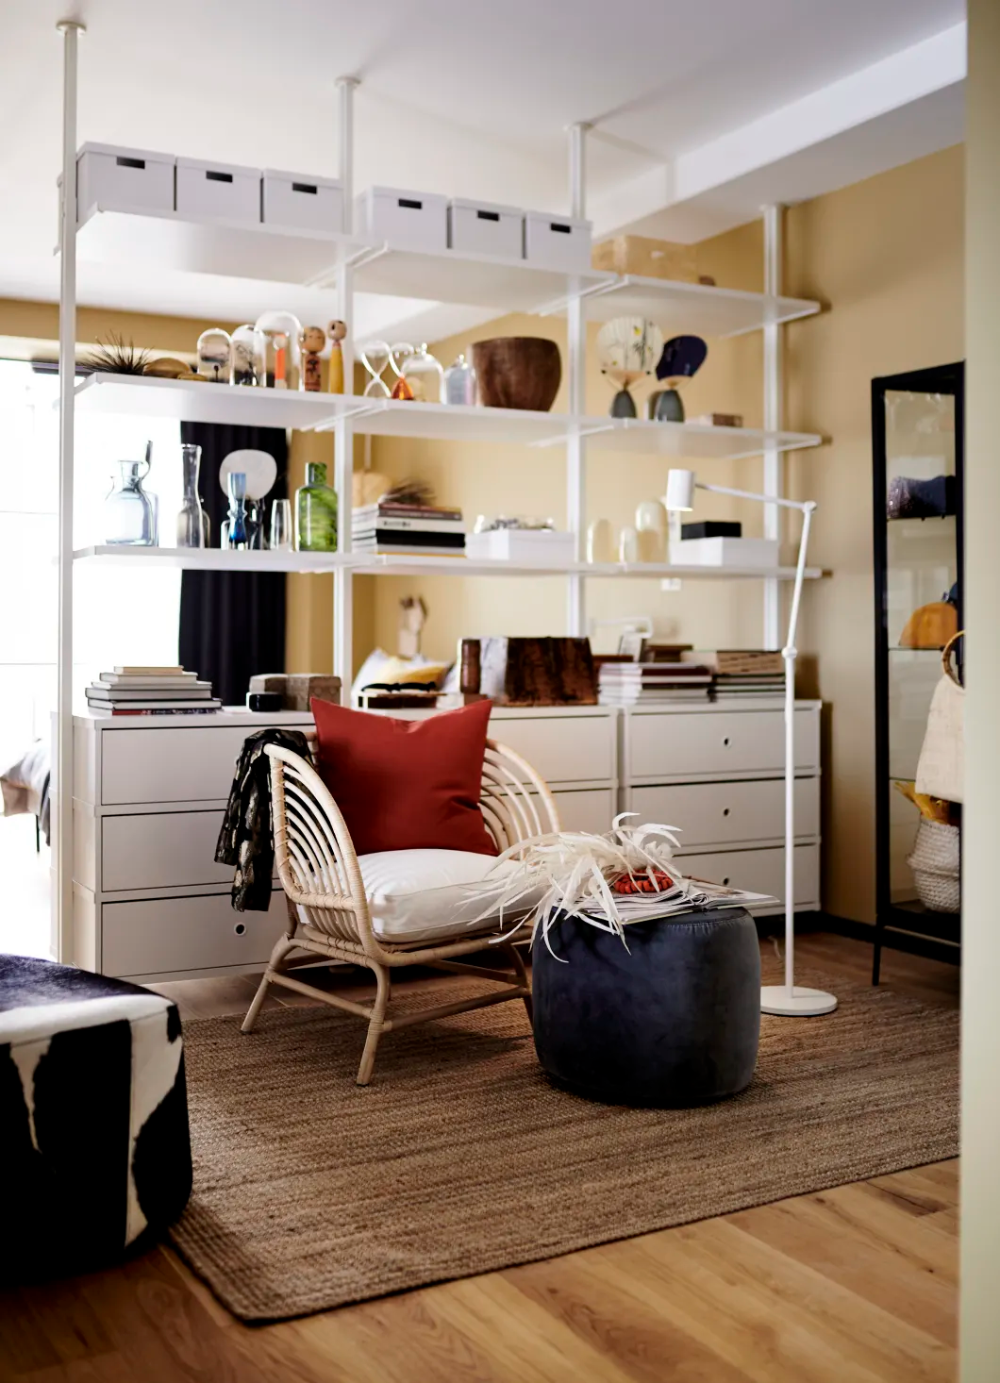 7 Genius Small Space Organizing Tips To Steal From The 2020 Ikea Catalog In 2020 Small Spaces Open Plan Living Room Small Space Organization